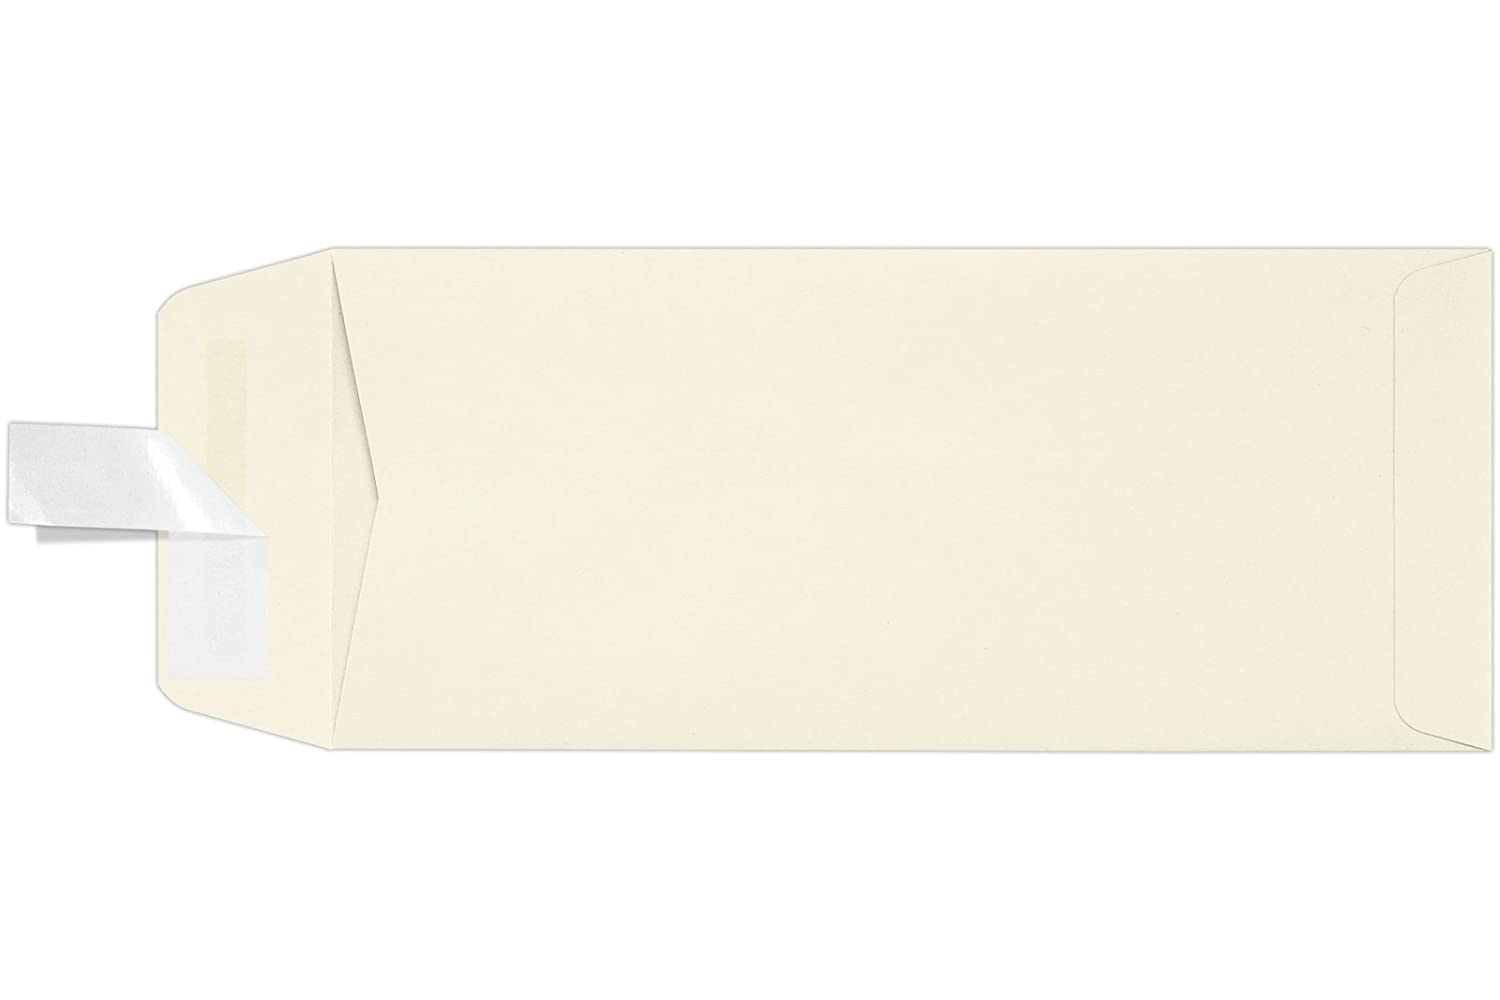 #10 Open End Envelopes w/Peel & Press (4 1/8 x 9 1/2) - Natural (50 Qty.) | Perfect for Checks, Invoices, Letterhead, Letters, Statements | 7716-N-50 Envelopes.com